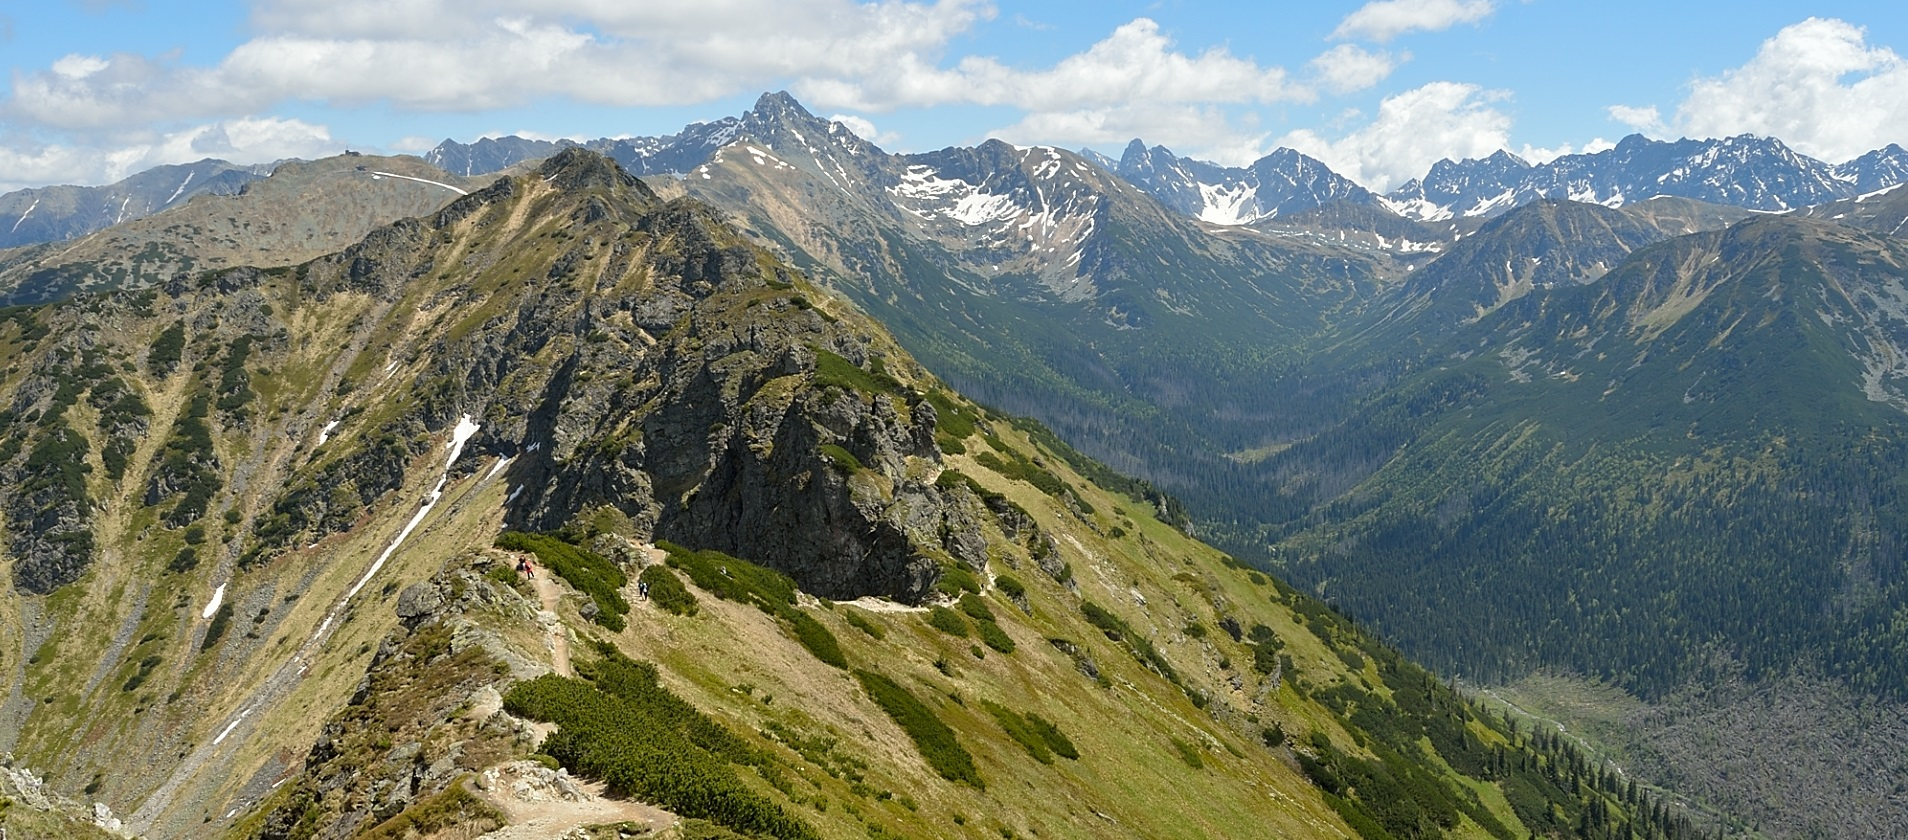 Two outstandingly beautiful days in Tatra mountains. Photogallery.